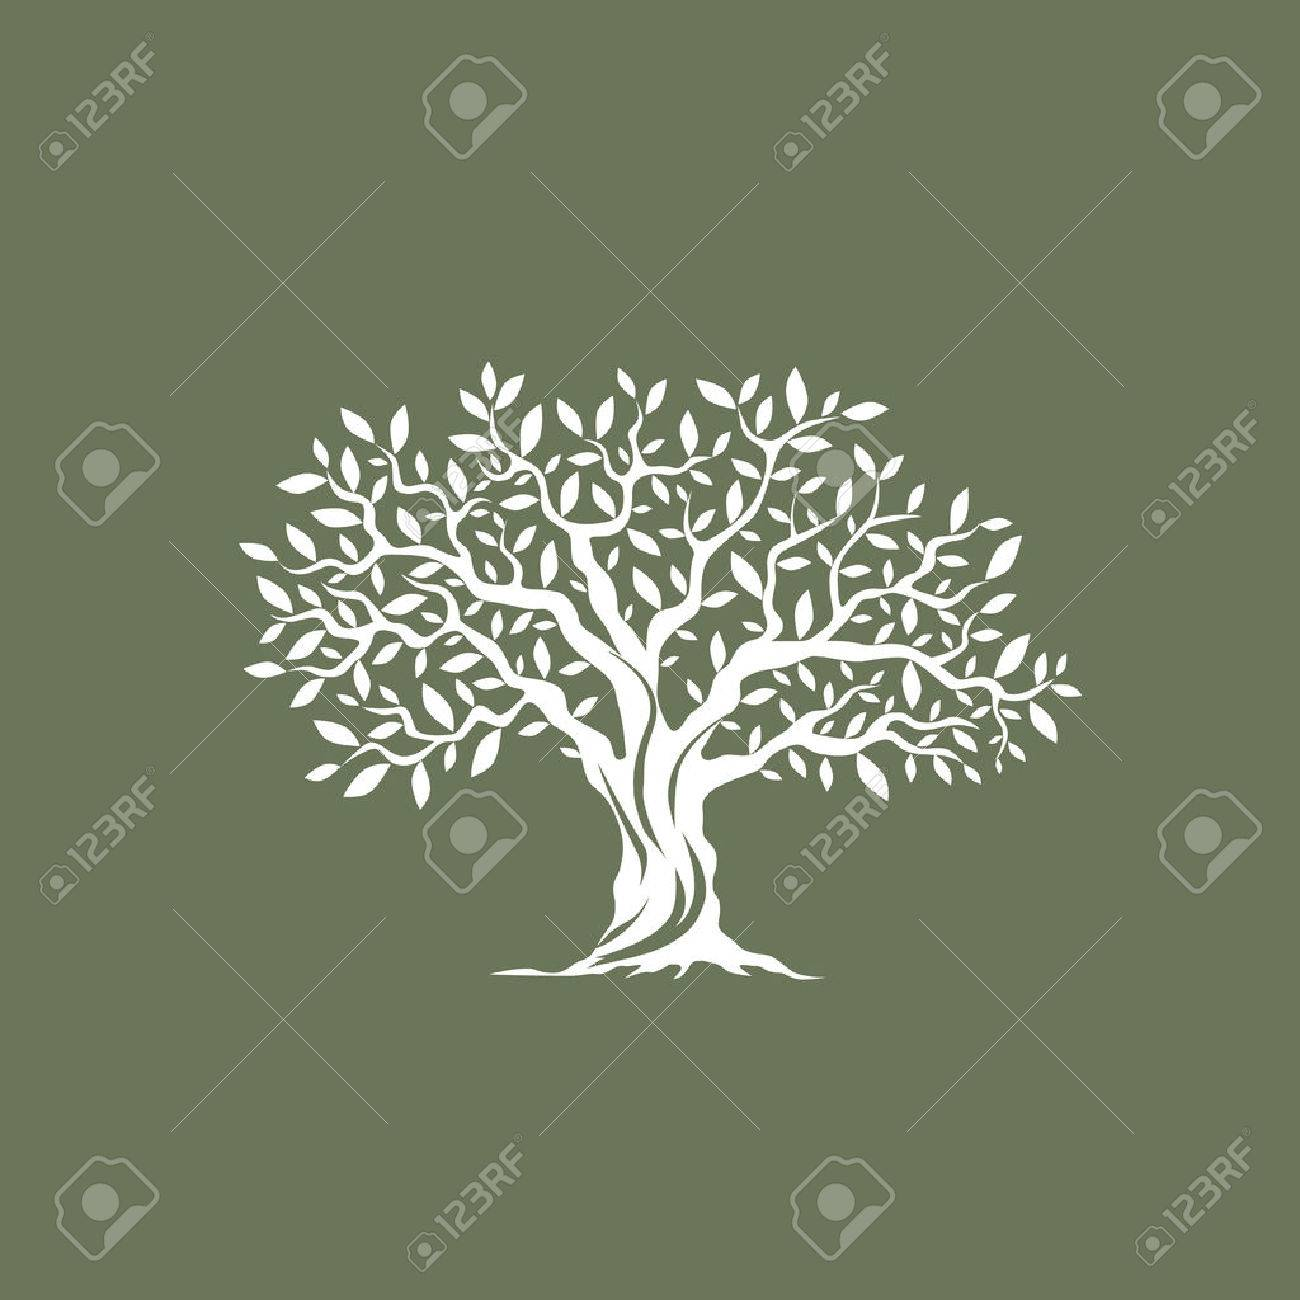 Beautiful magnificent olive tree silhouette on grey background. Infographic modern vector sign. Premium quality illustration design concept. - 58210537